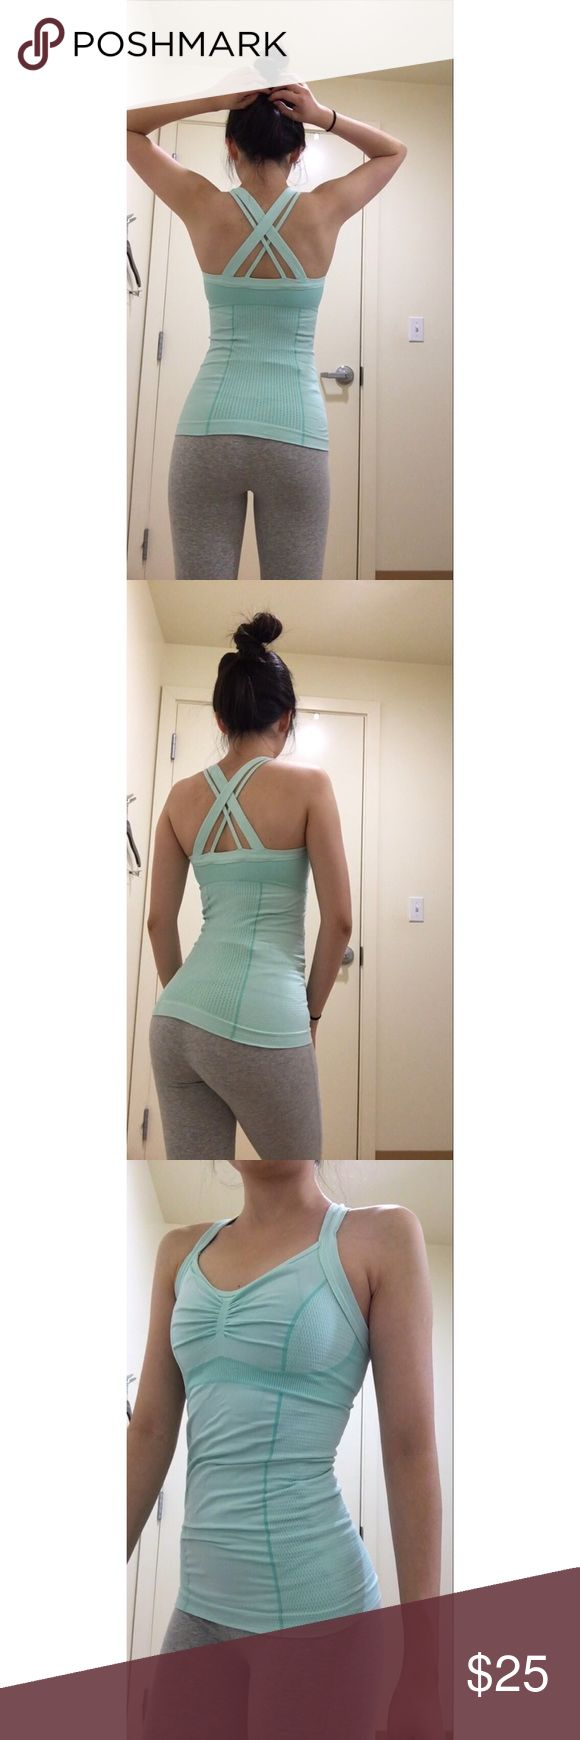 Zella tank NEW Zella mint tank. Size XS. The color is gorgeous! I love the crisscrossing on the back. The quality is awesome. The fit is pretty tight so it keeps everything in place. The design is super flattering.#zella #workouttanks #gym #workout #workoutgear #comfy #workoutcloth #fitness Zella Tops Tank Tops